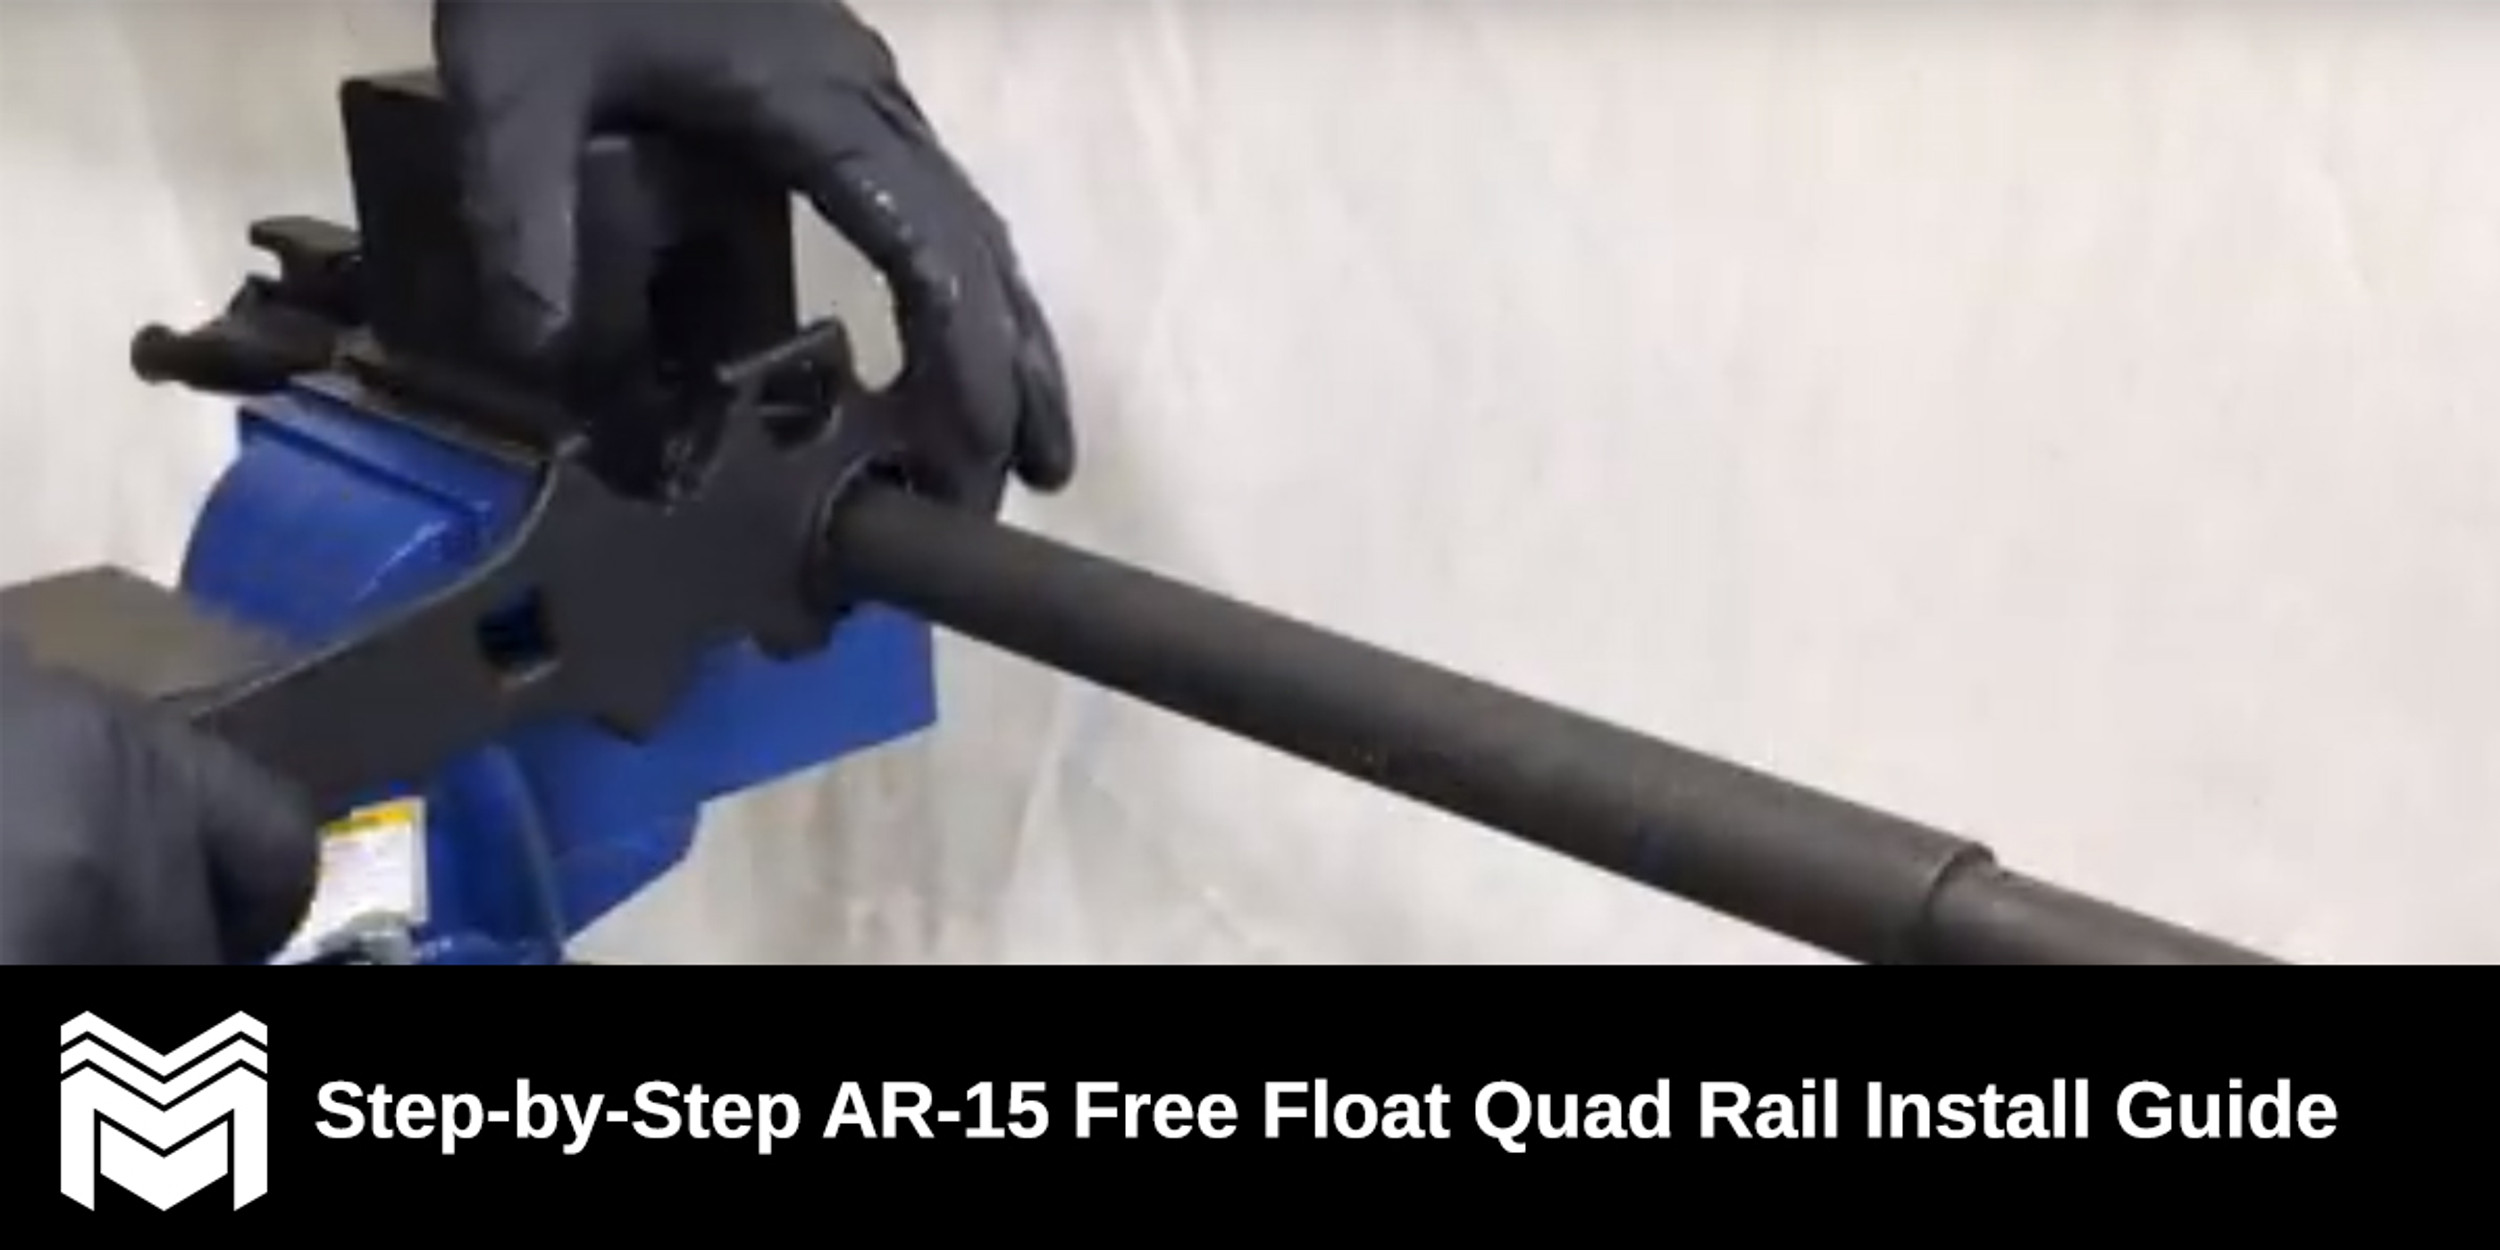 Step-by-Step AR-15 Free Float Quad Rail Install Guide